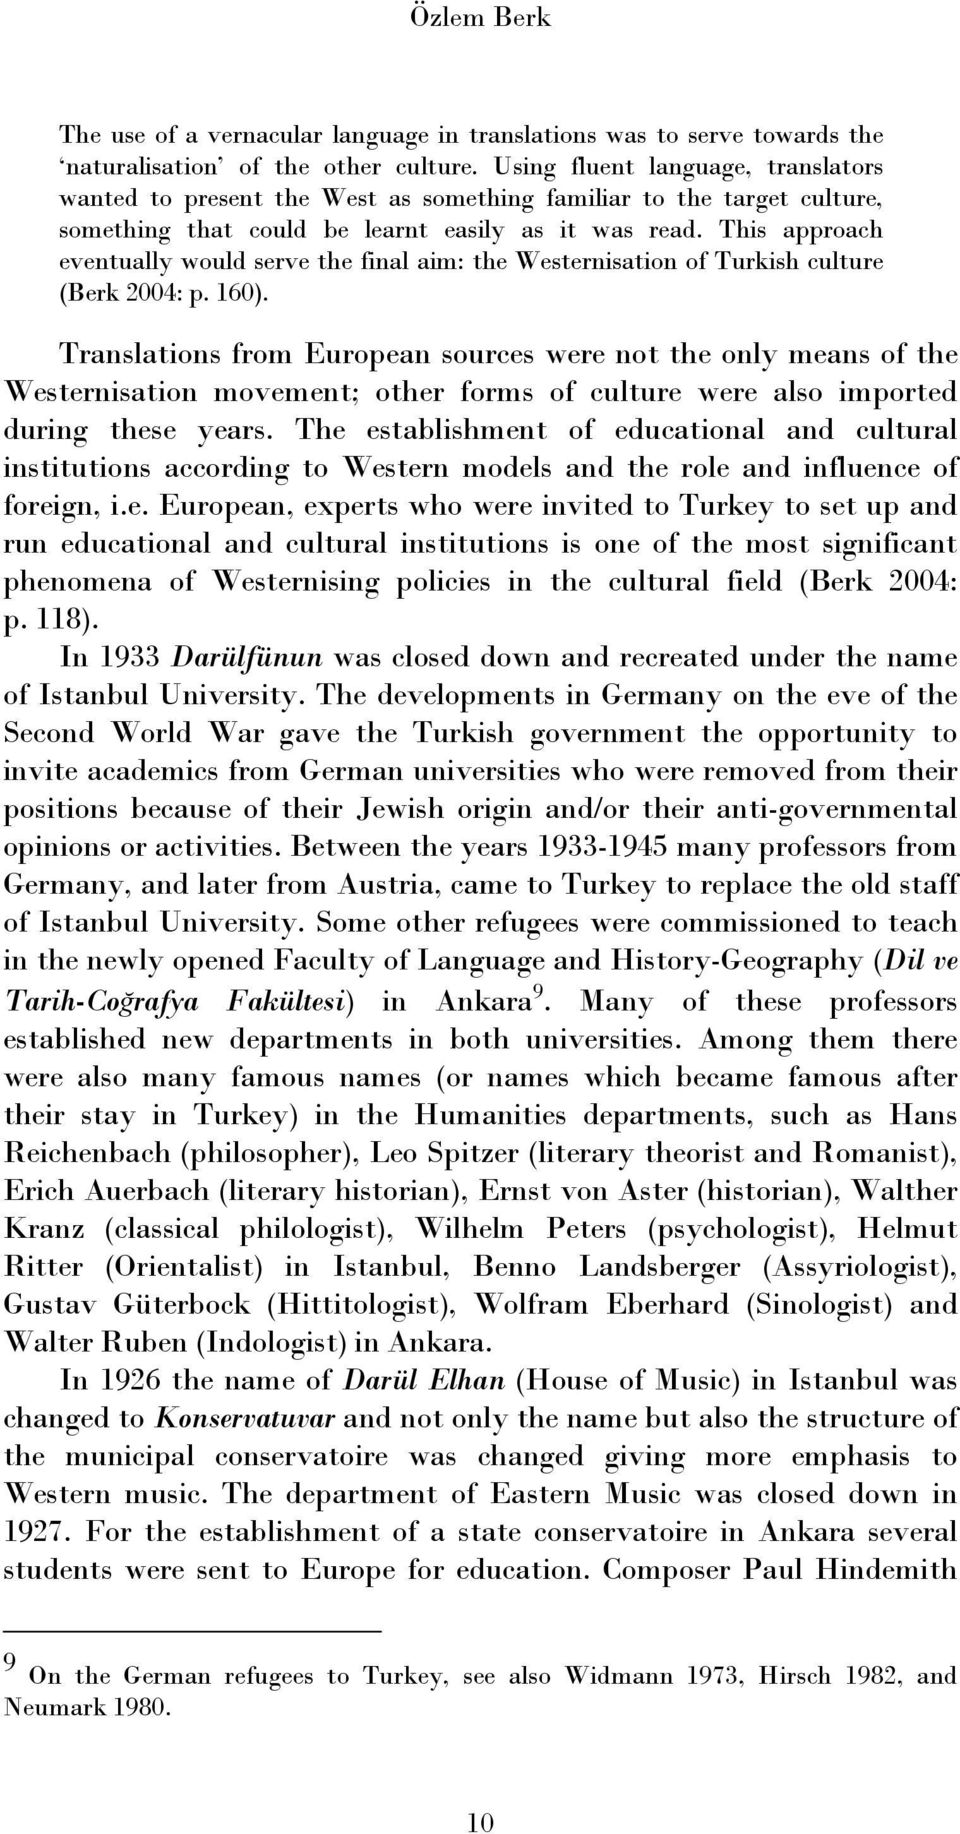 This approach eventually would serve the final aim: the Westernisation of Turkish culture (Berk 2004: p. 160).